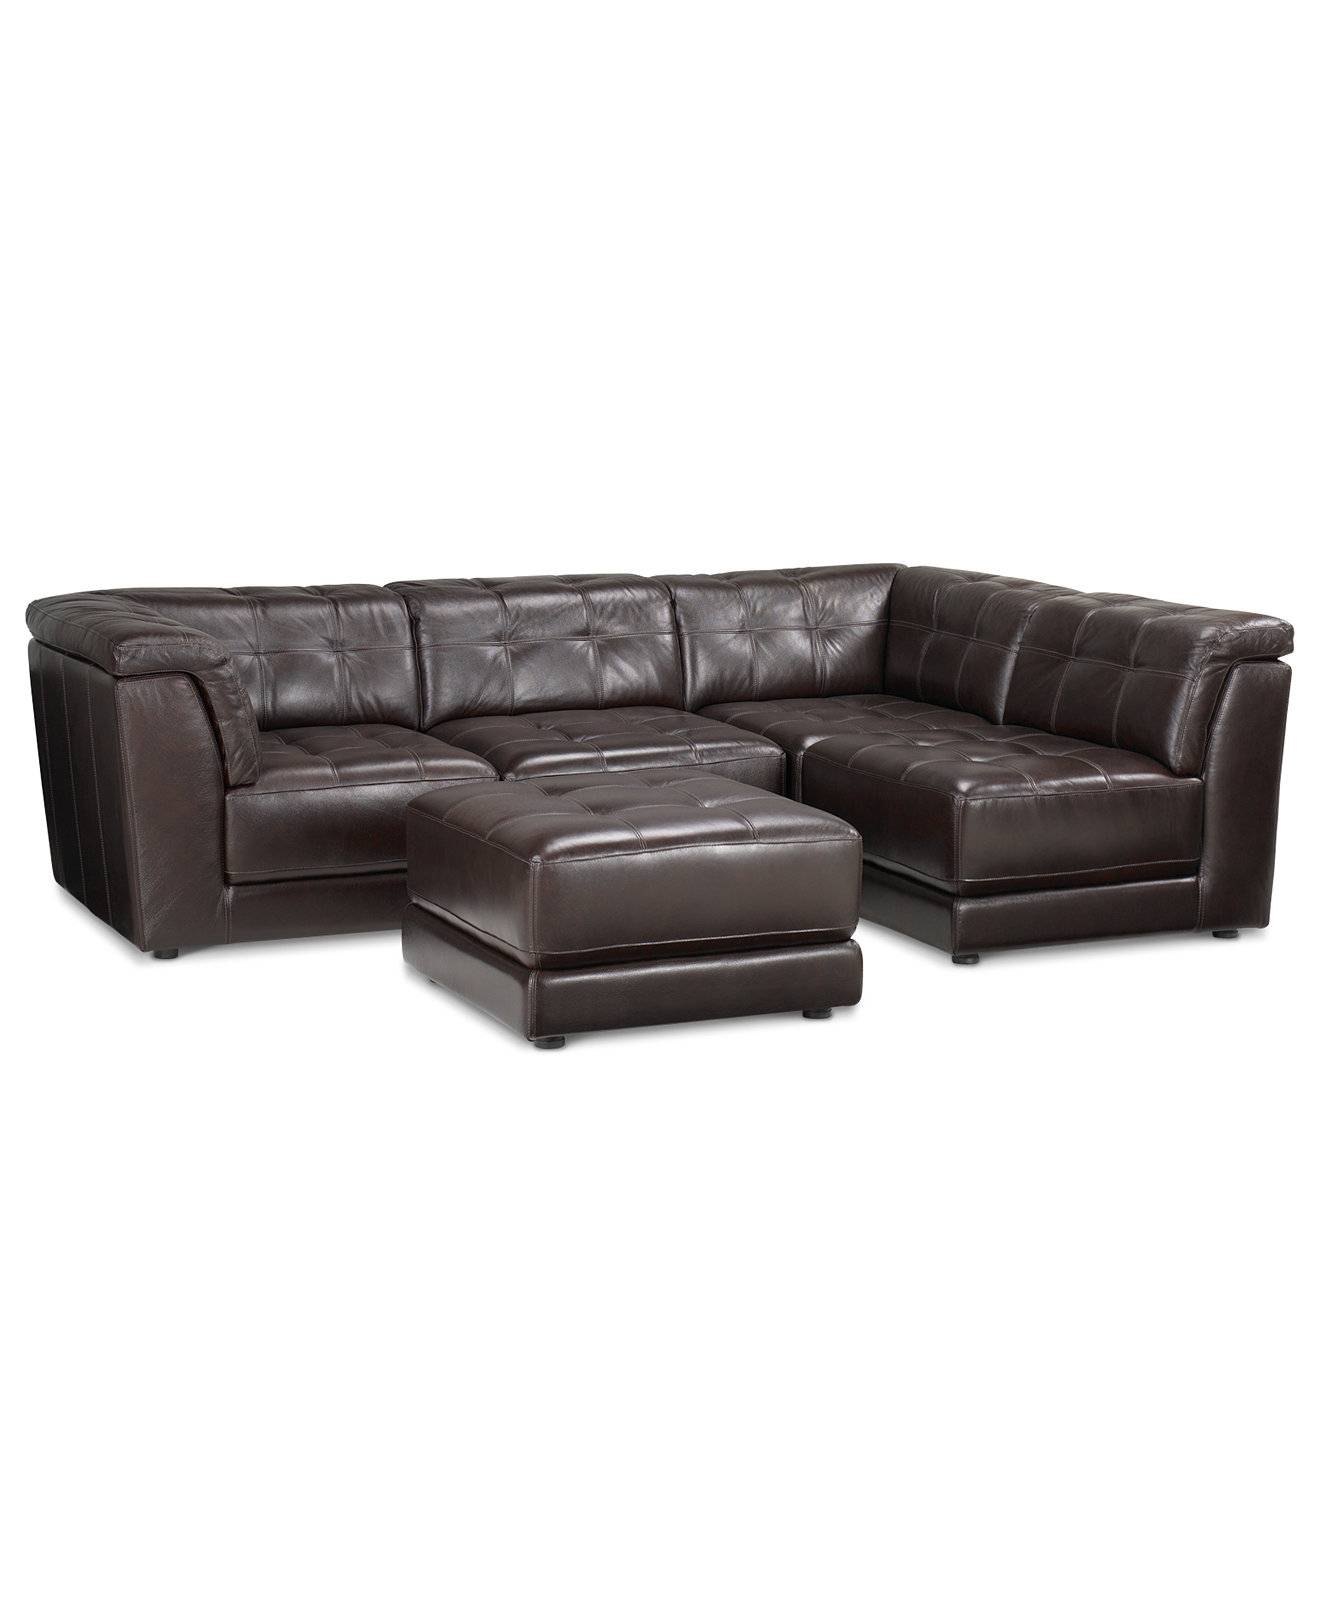 Stacey Leather 5-Piece Modular Sofa | Modular Sectional Sofa within Leather Modular Sectional Sofas (Image 30 of 30)